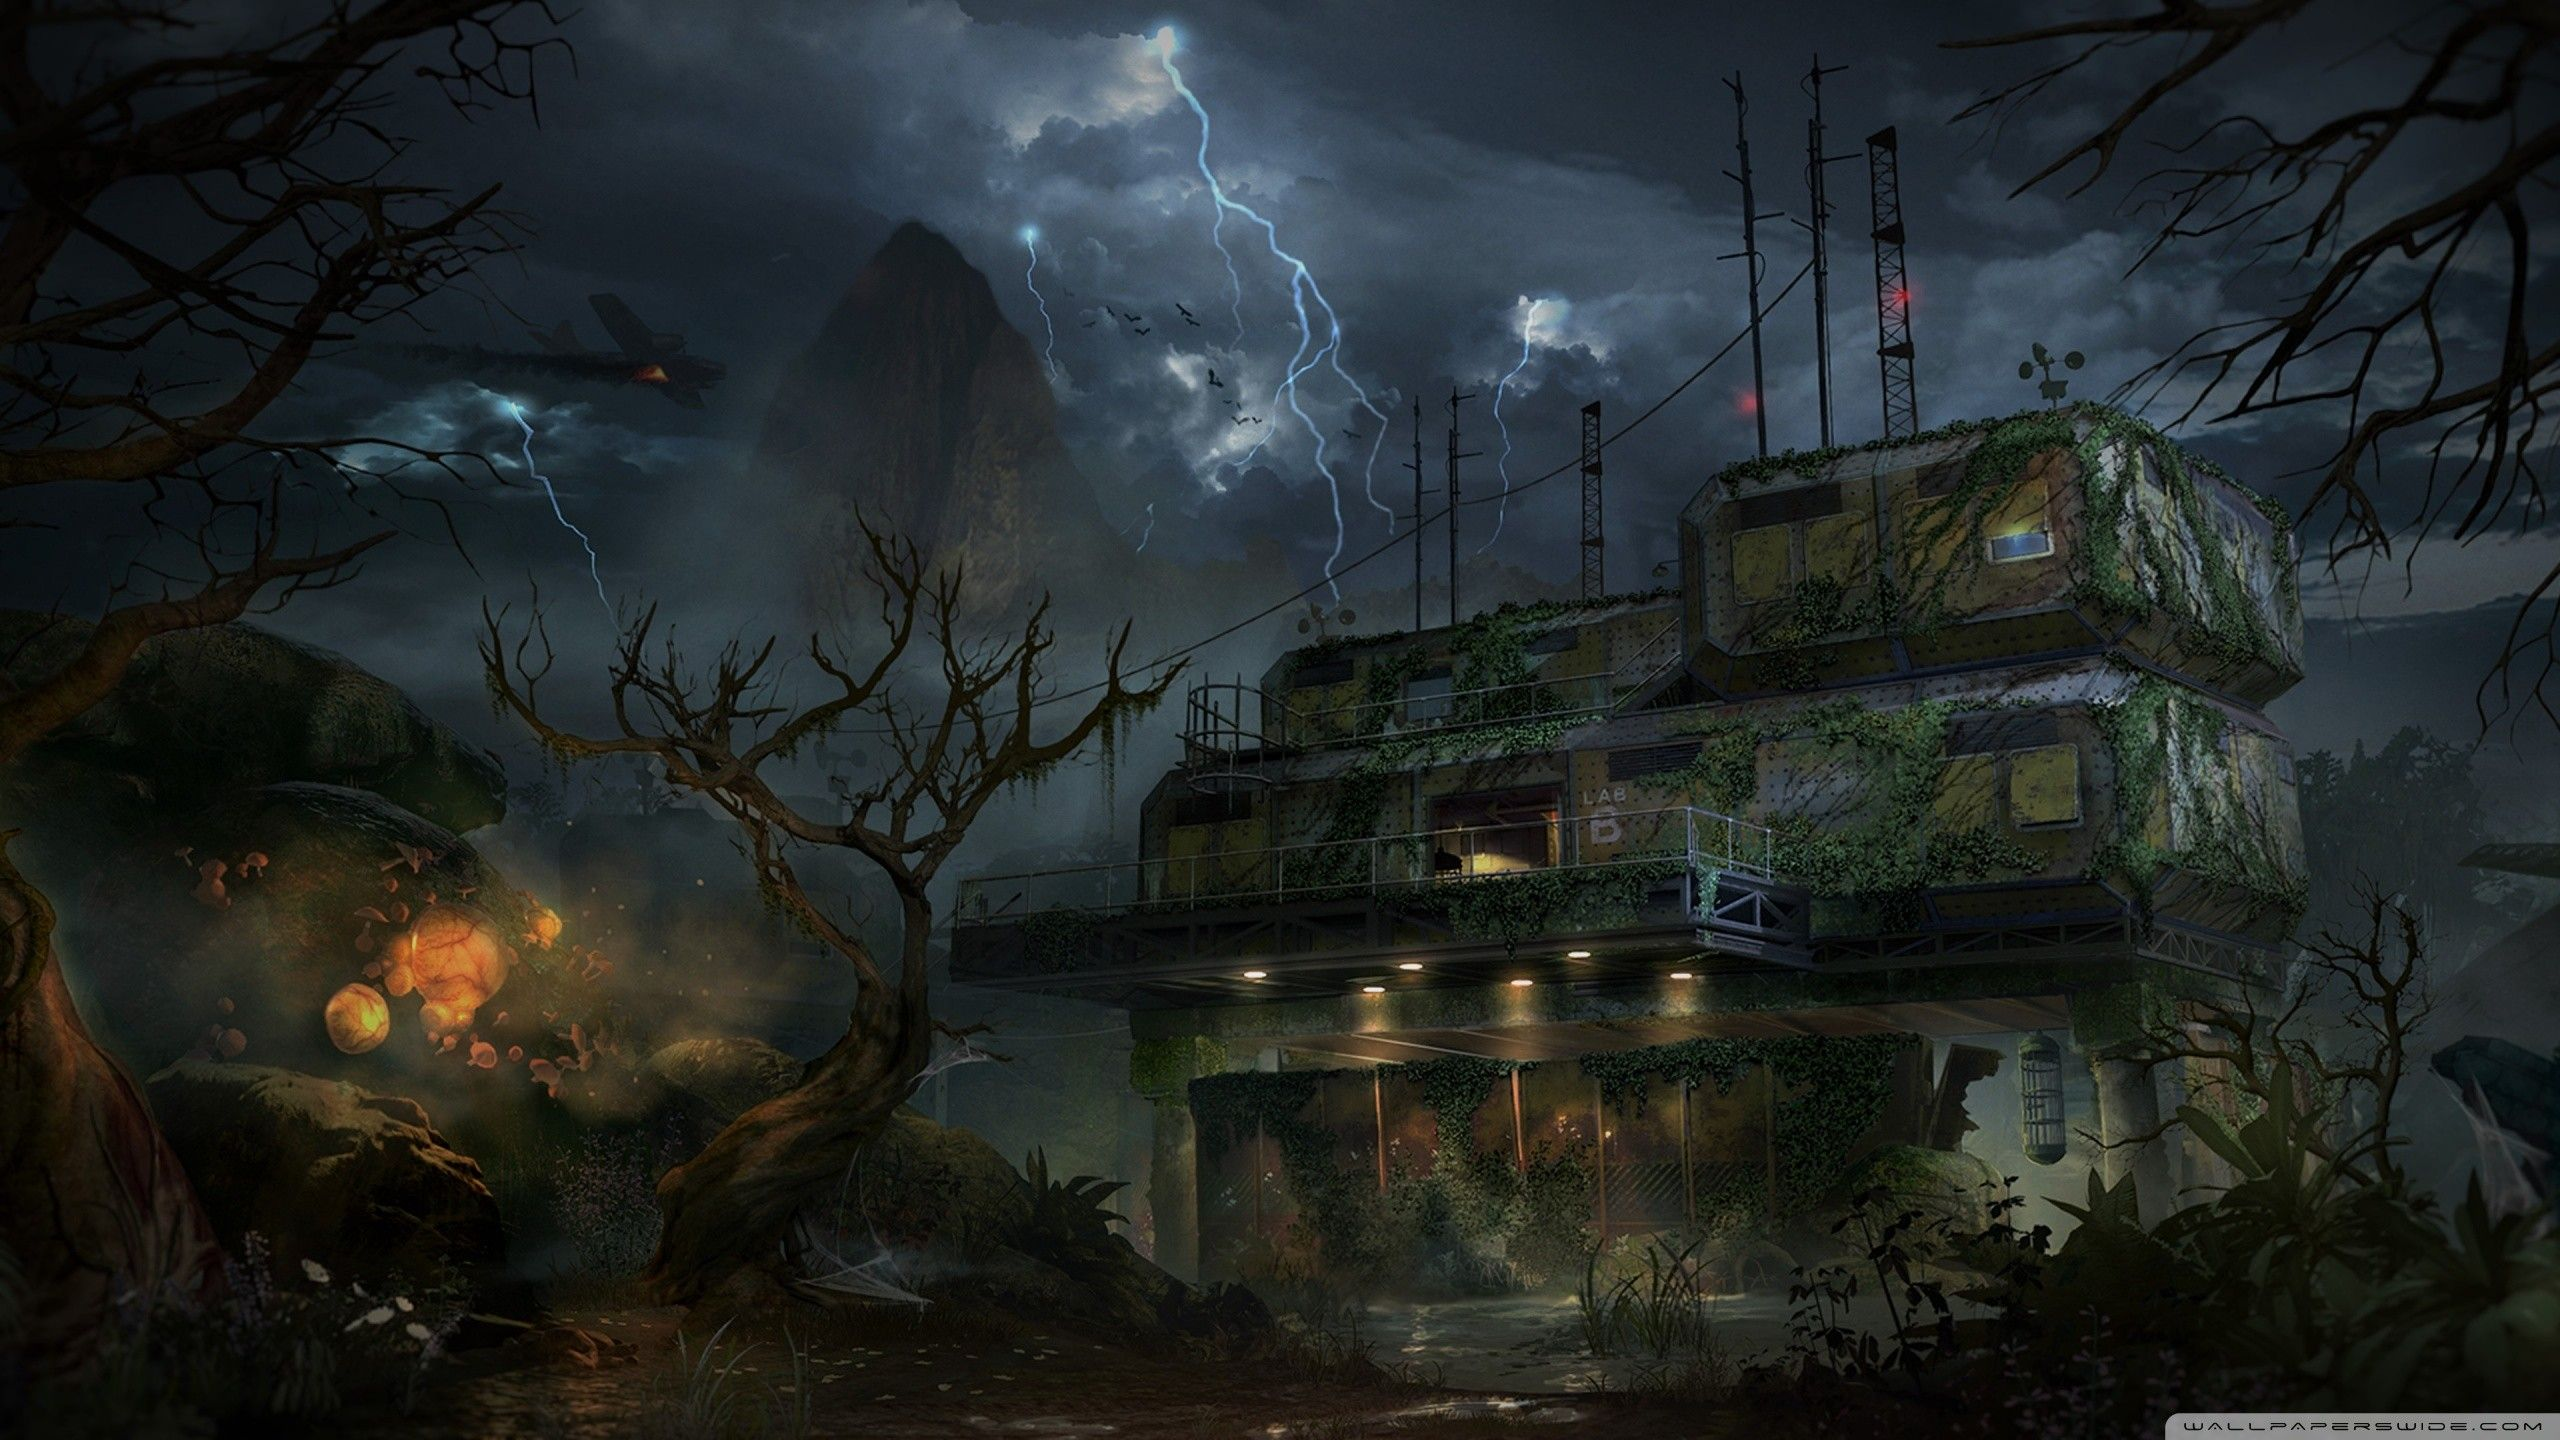 2560x1440 Hd 16 9 Call Of Duty Call Of Duty Zombies Zombie